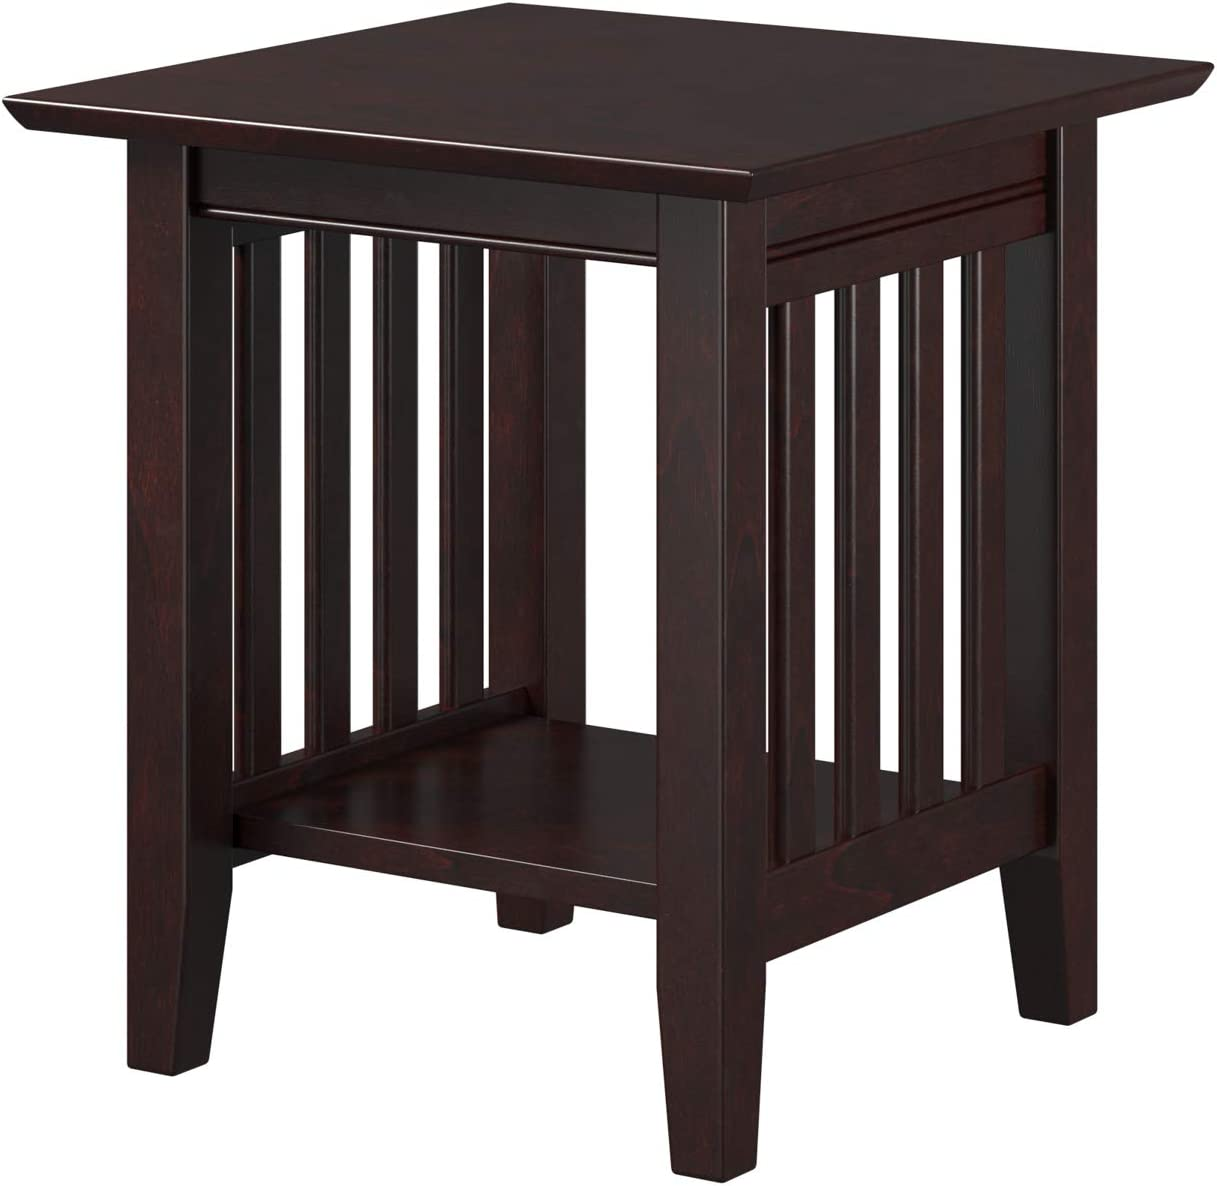 "Atlantic Furniture Mission End Table, (20"" x 20""), Espresso"